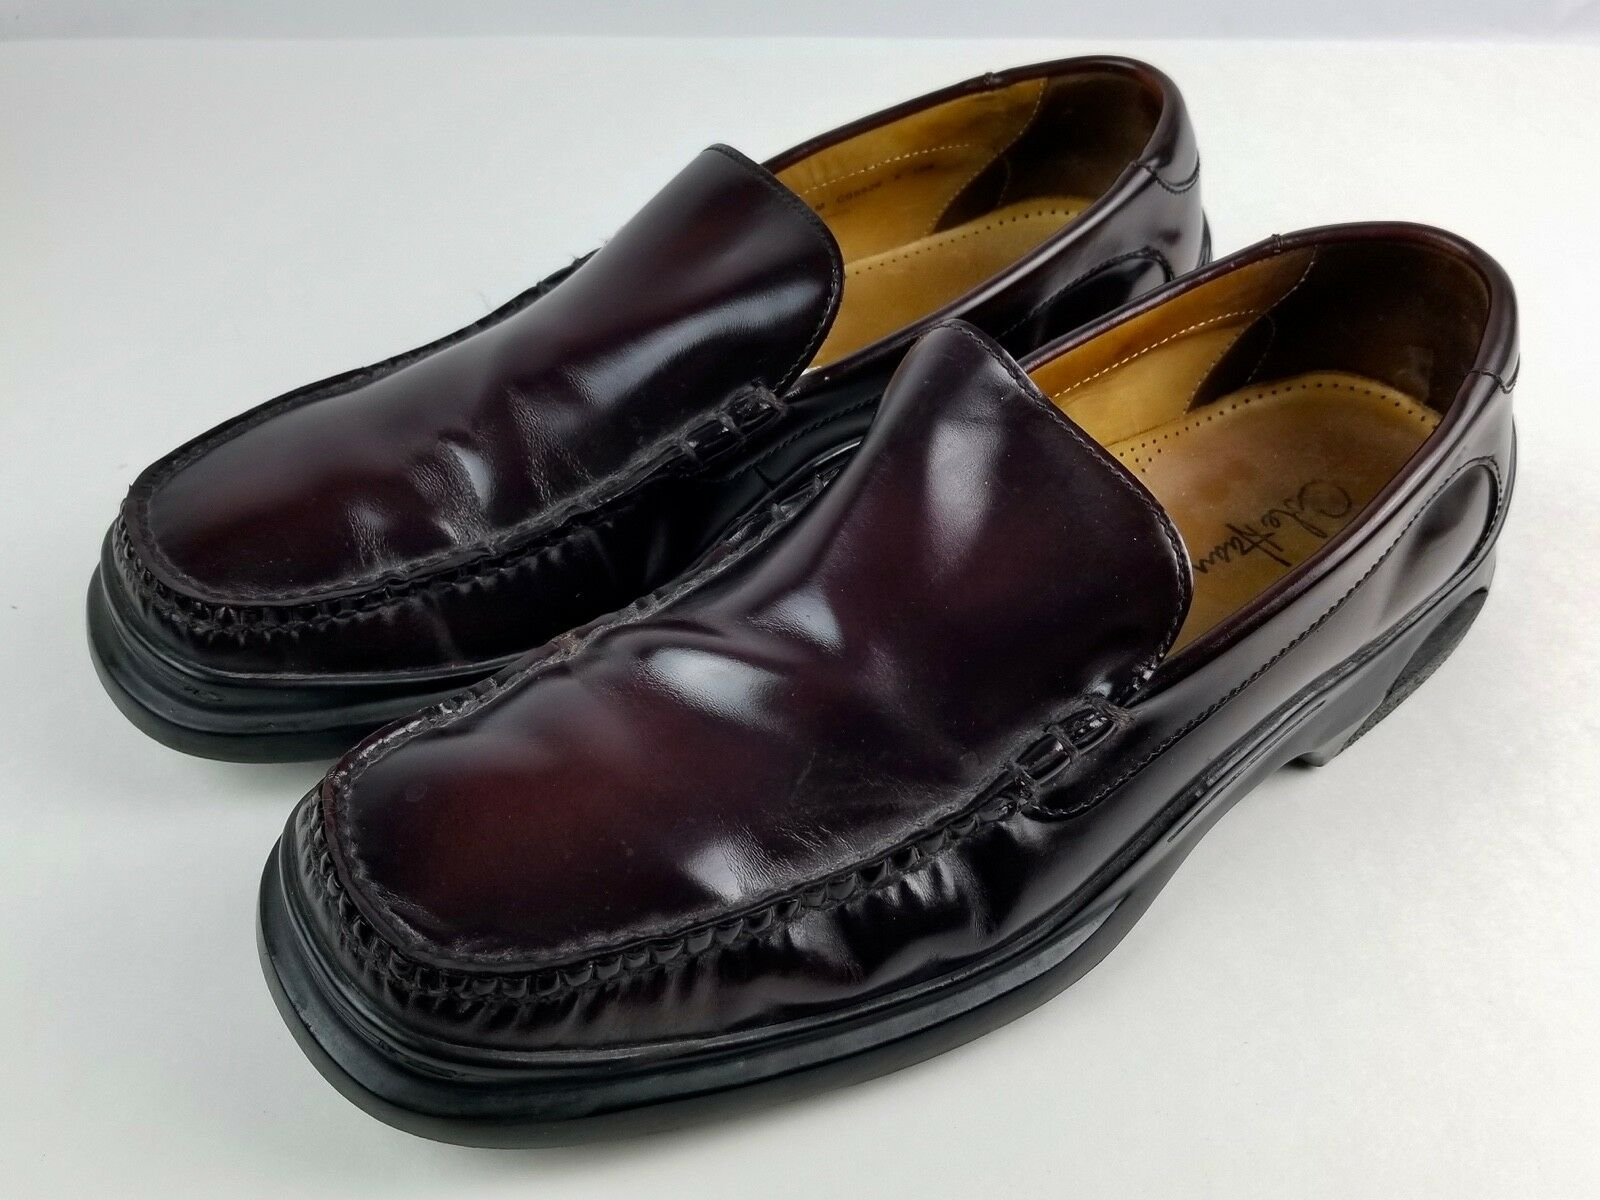 Cole Haan Men's Burgundy Slip-on loafers Size 10.5 M Dress shoes VG condition